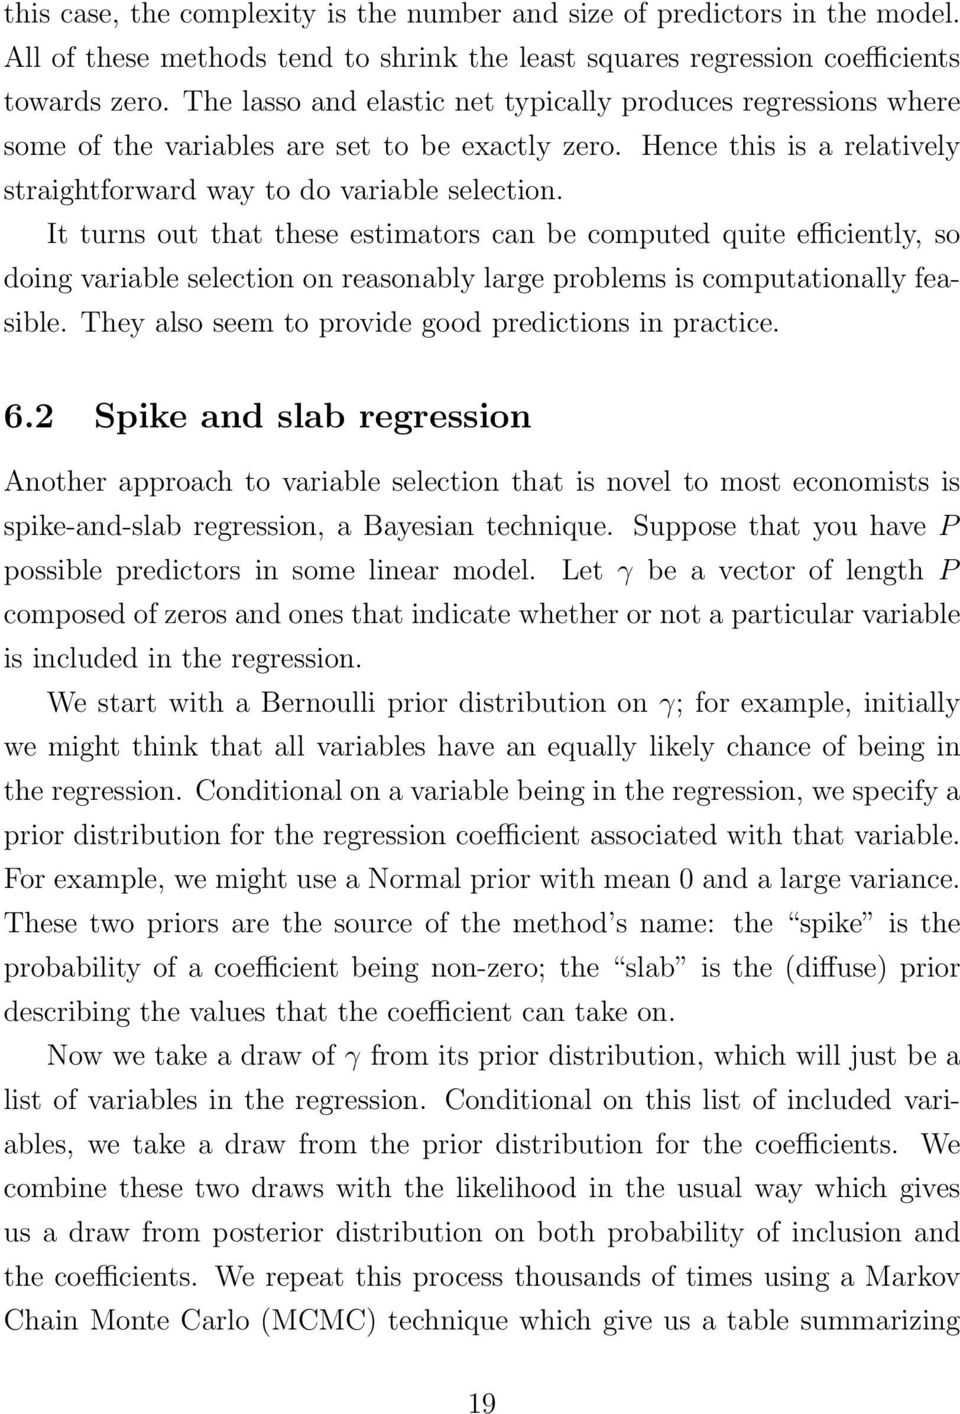 It turns out that these estimators can be computed quite efficiently, so doing variable selection on reasonably large problems is computationally feasible.